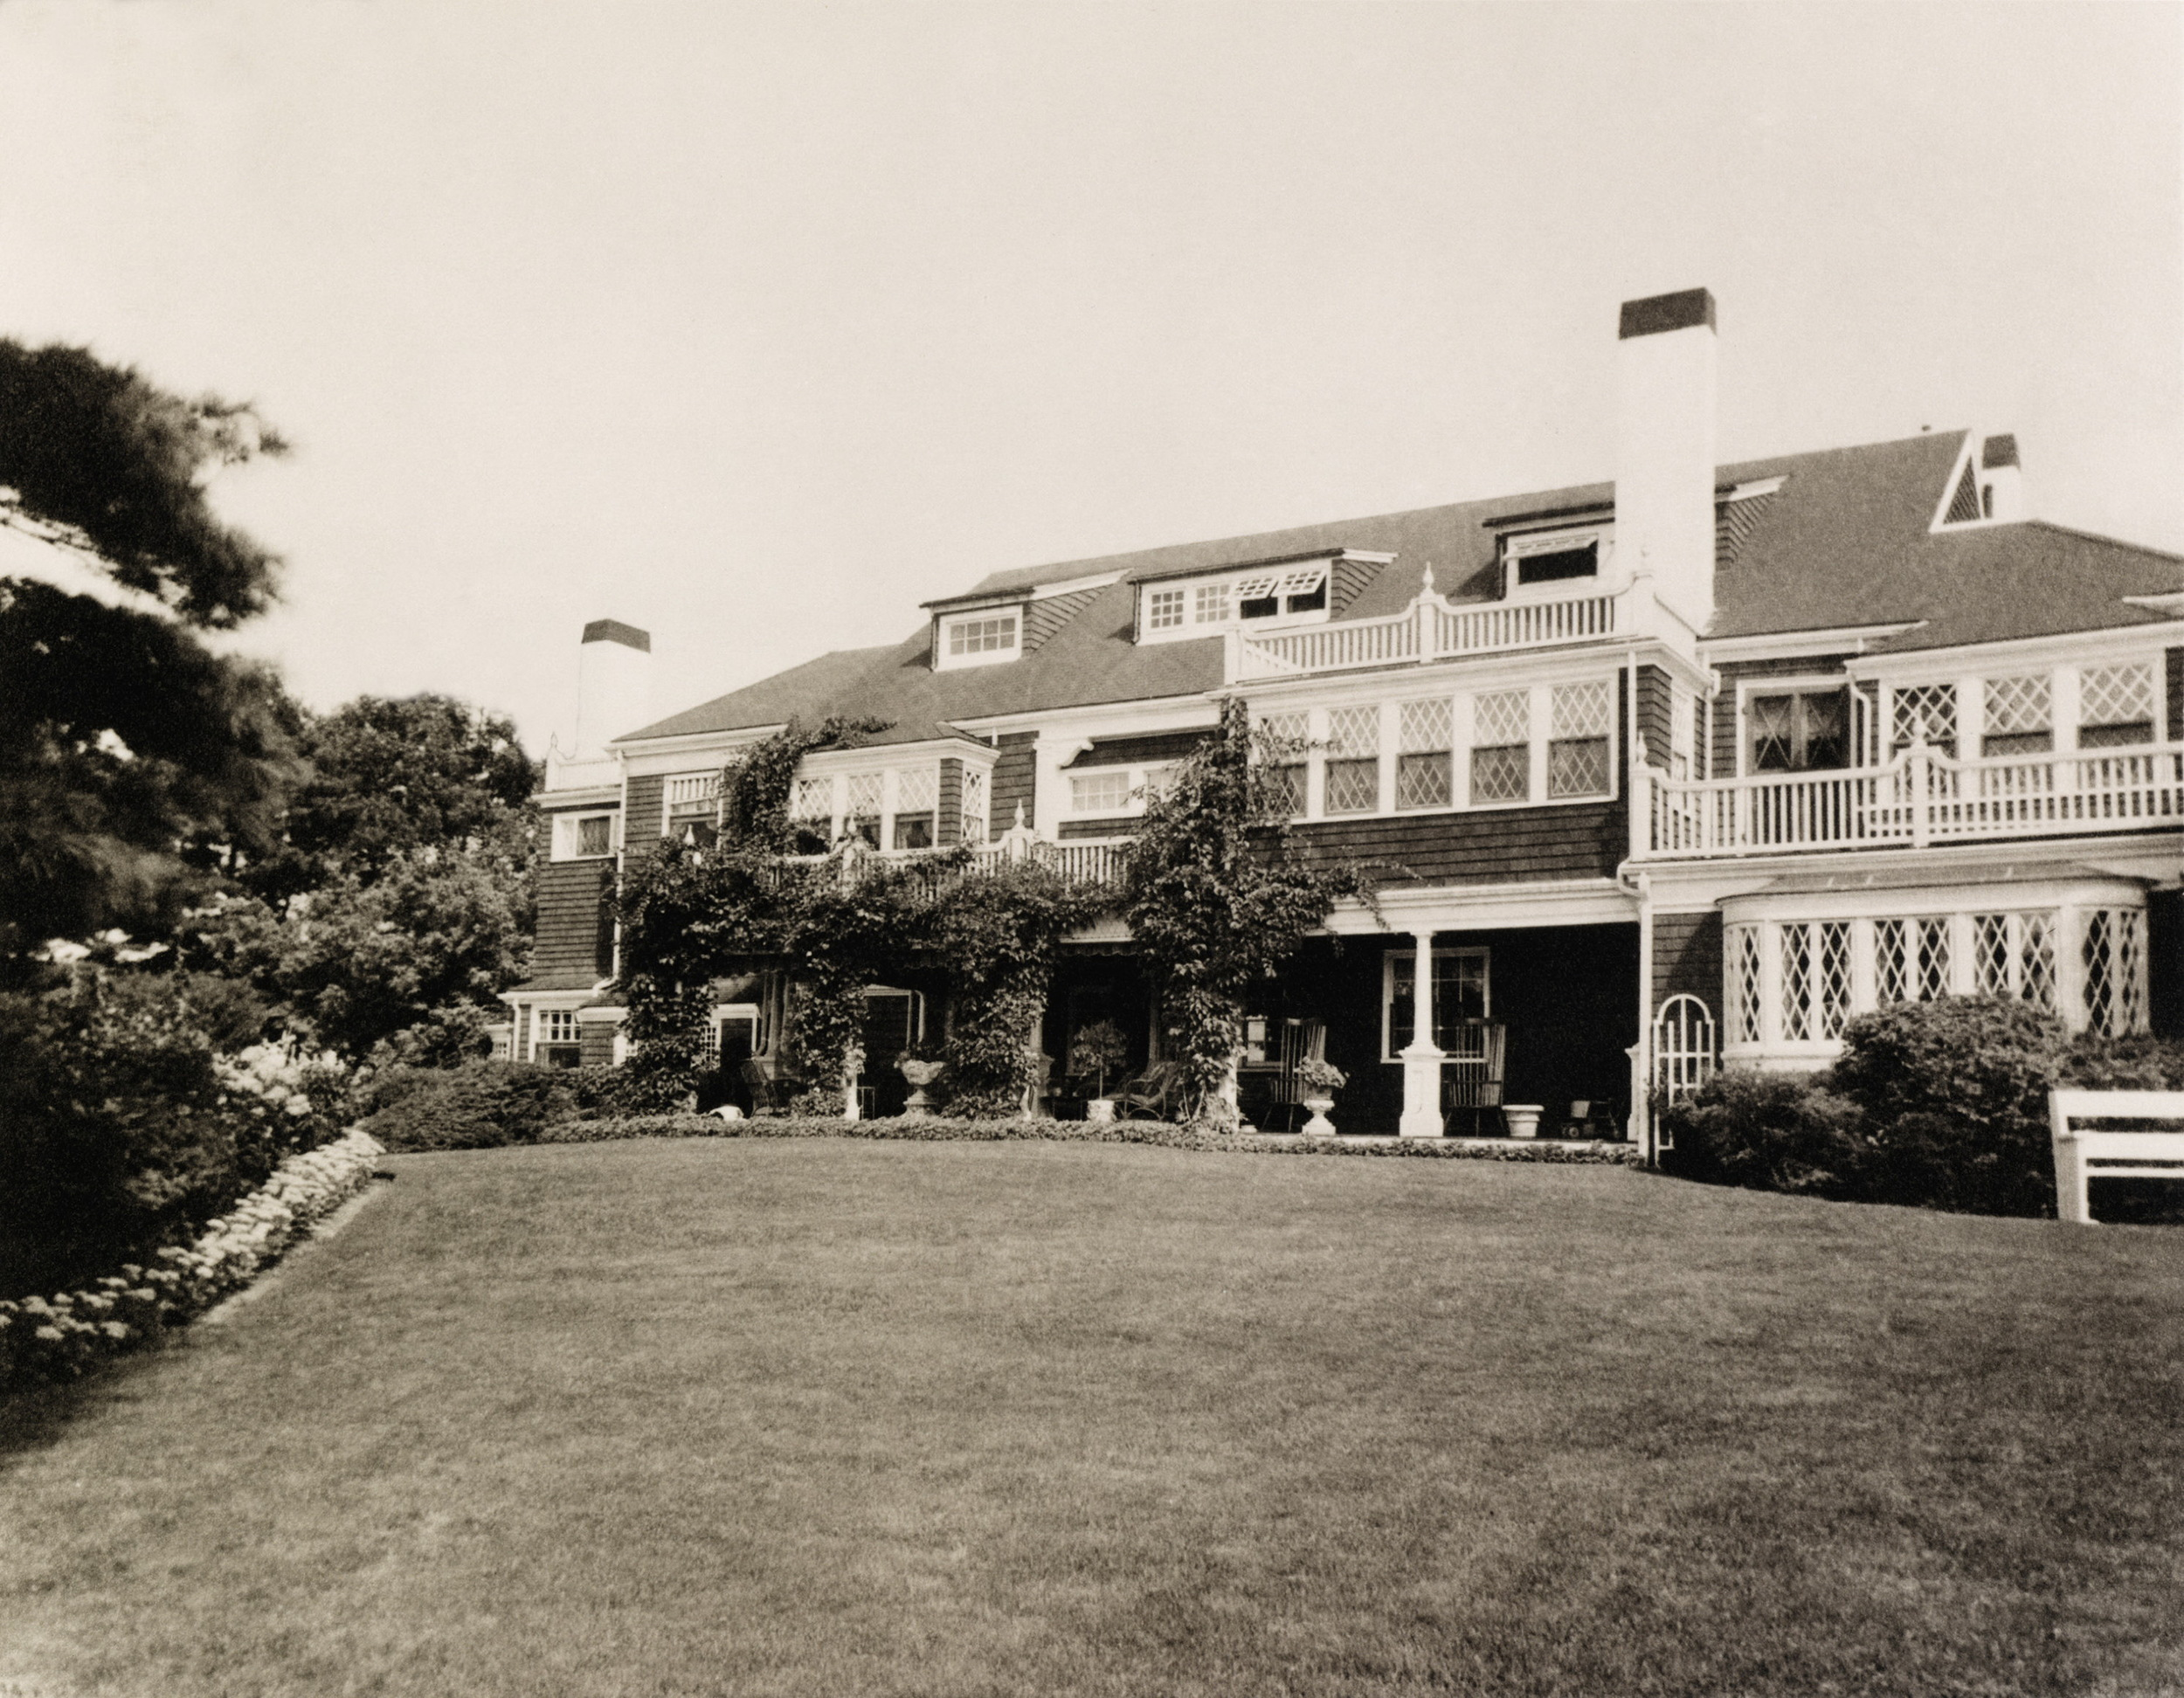 In 1920 alterations were made and the house was renamed The Moorings